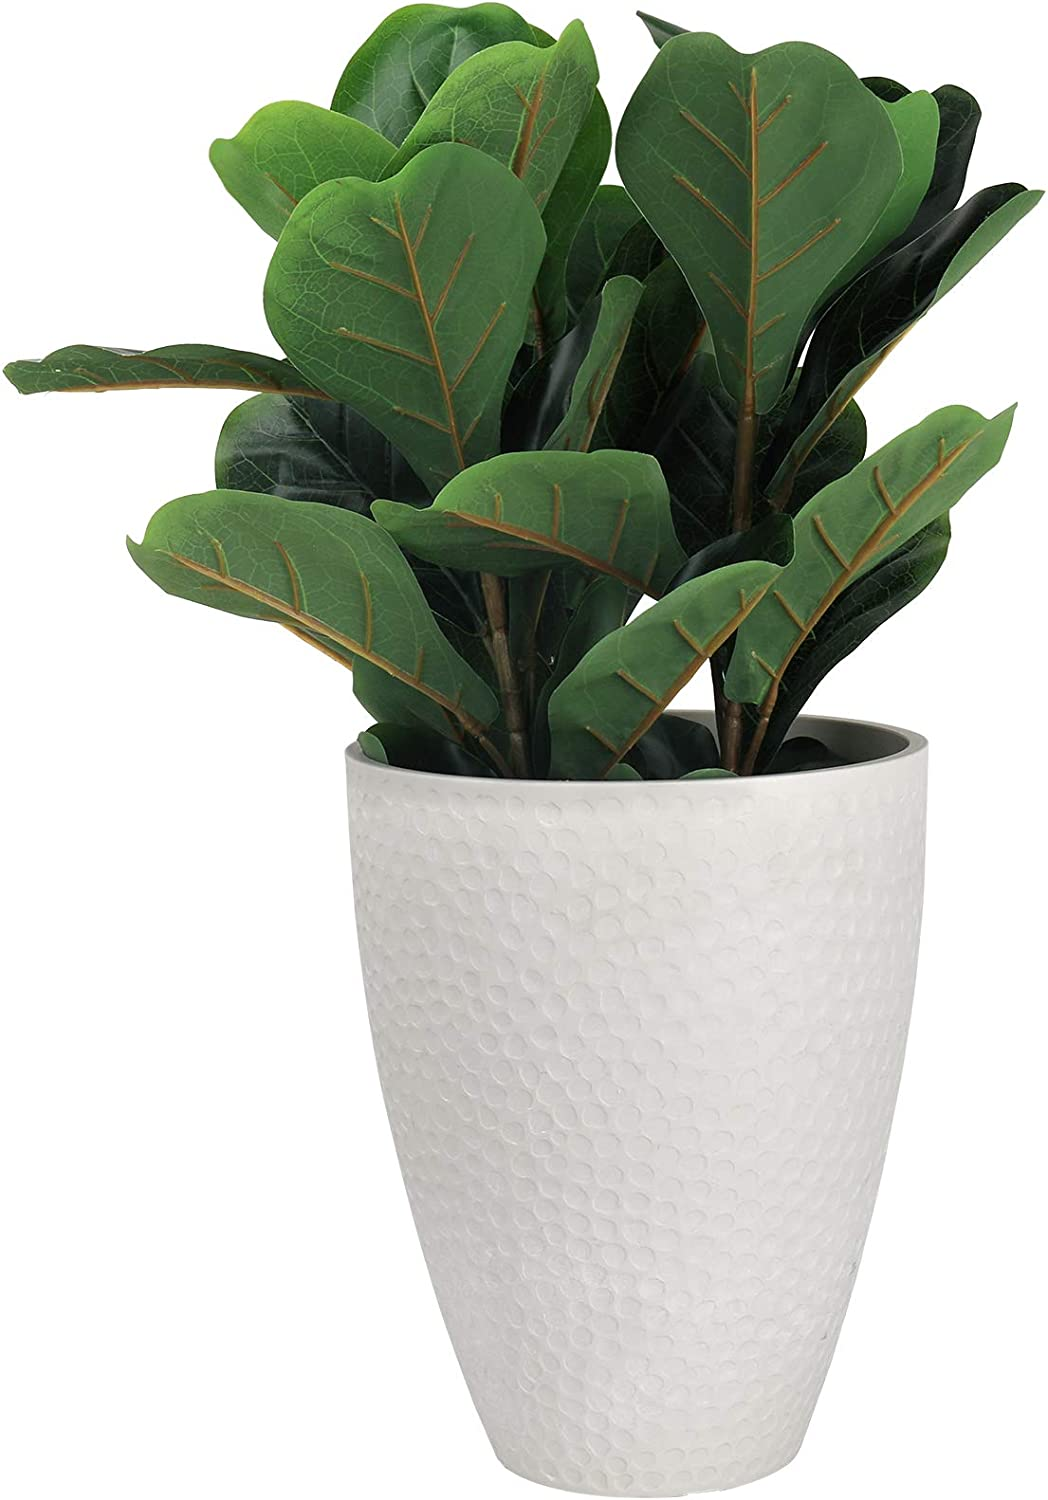 LA JOLIE MUSE Tall Planter - 14.2 Inch Large Indoor & Outdoor Tree Planter, Plant Pot Containers, White Stone, Honeycomb